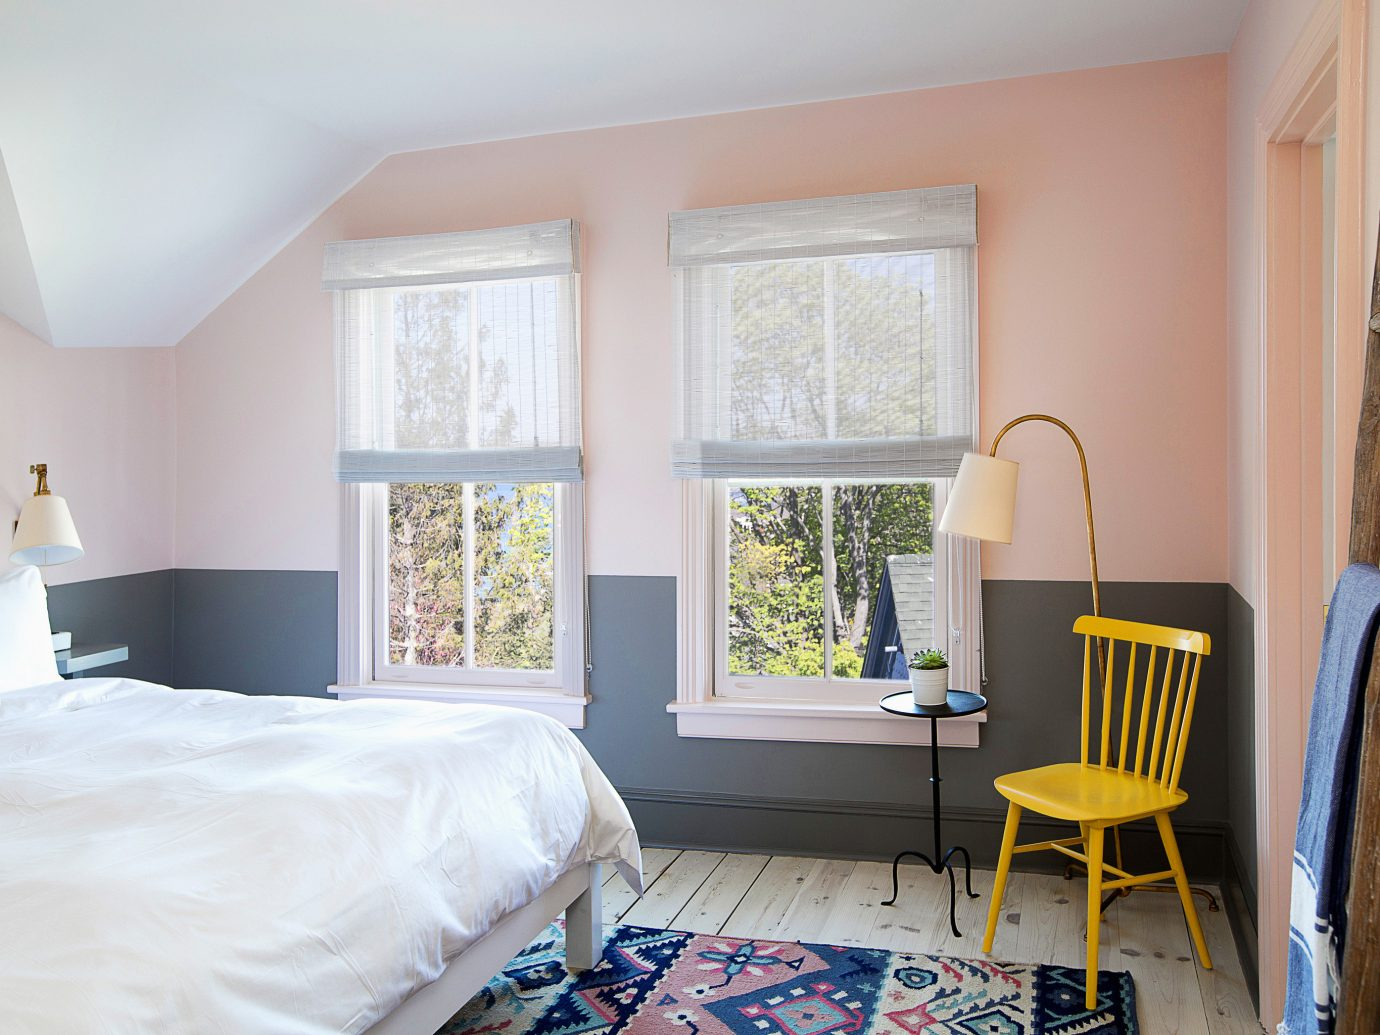 Bedroom at The Chequit, Shelter Island, NY